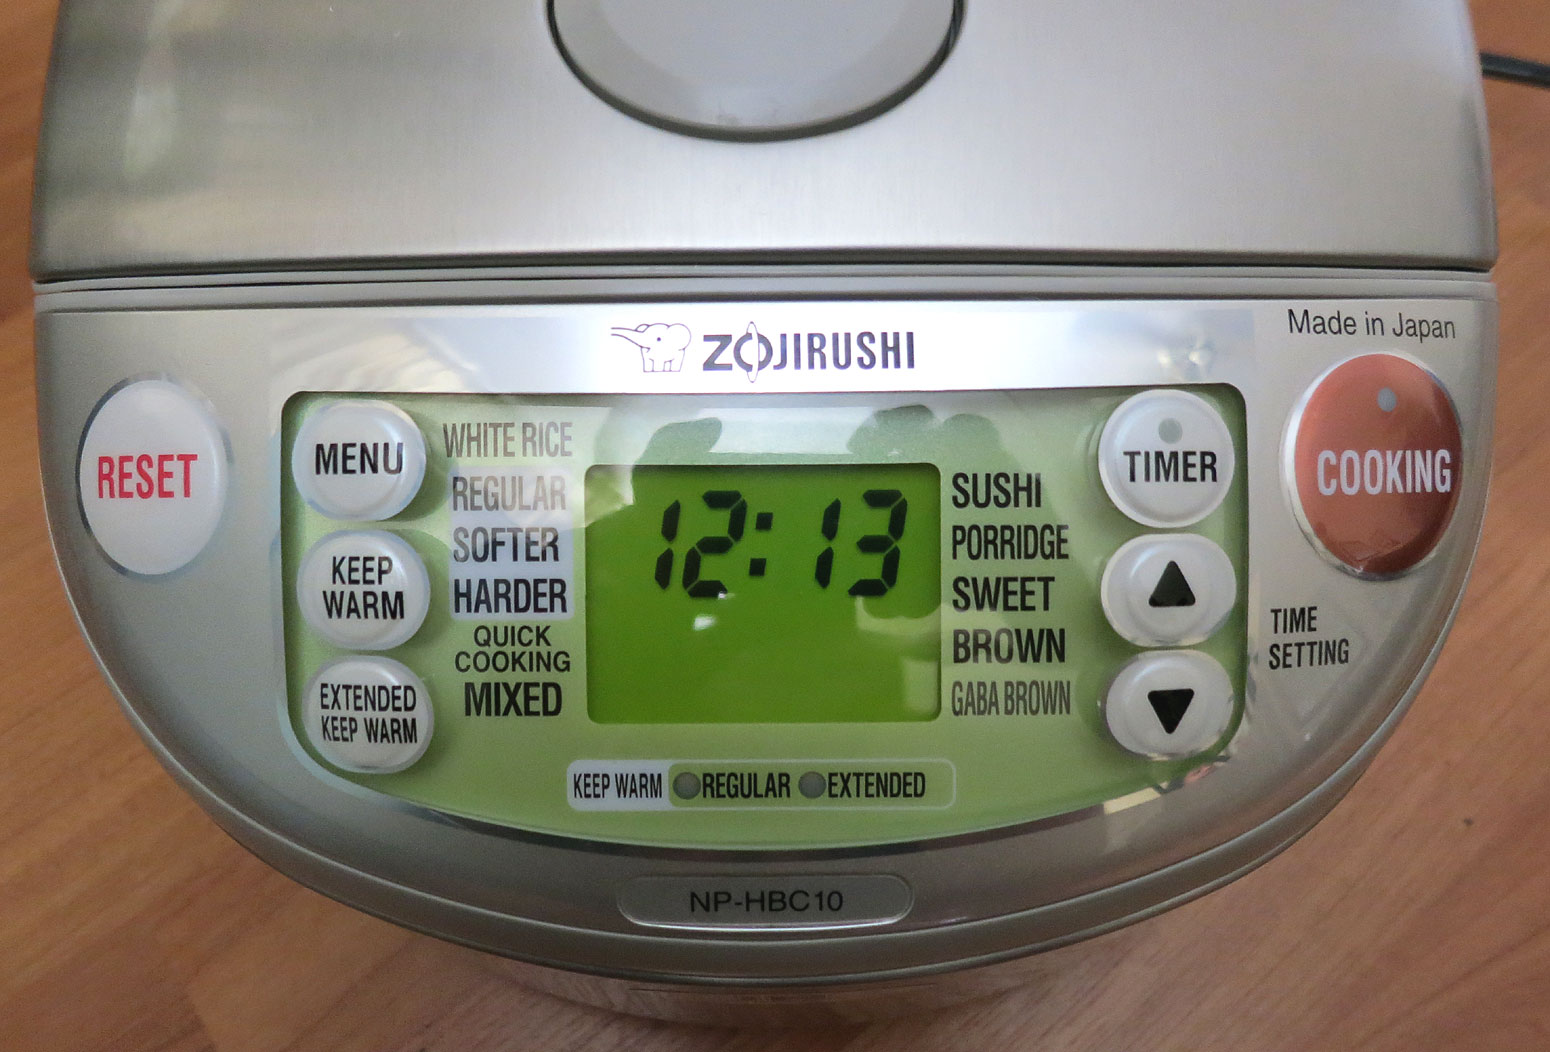 Review Zojirushi Induction Heat Rice Cooker Tasty Island Tiger Wiring Diagram Up Front On Top Where The Brains Are We Have Control Panel So You Can Tell Intelligent Fuzzy Logic Cpu What Want To Cook And When It